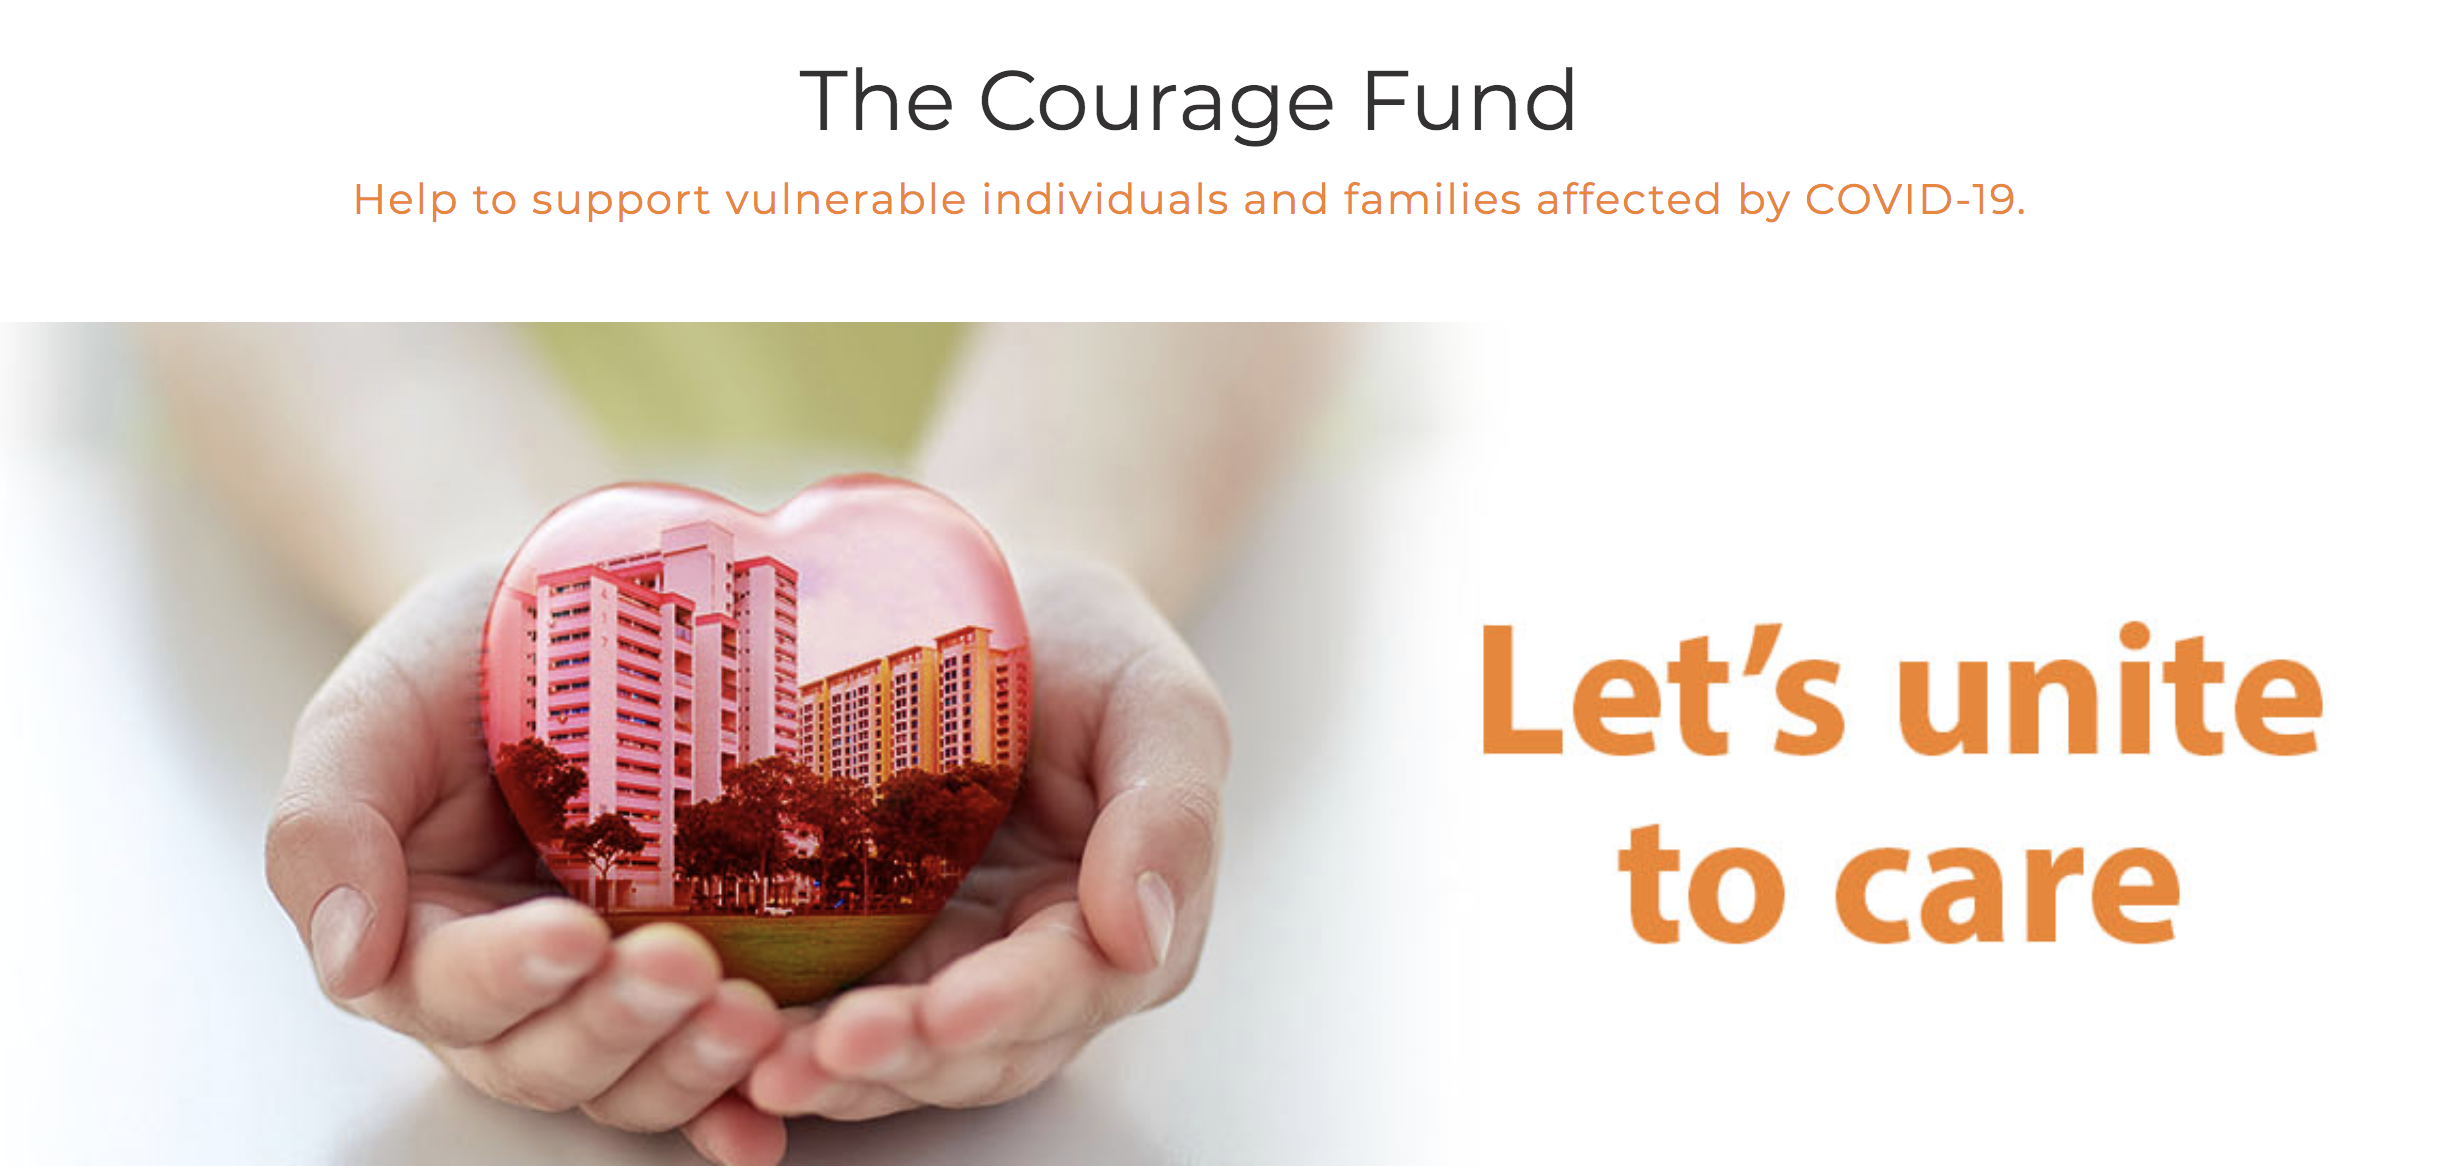 The Courage Fund